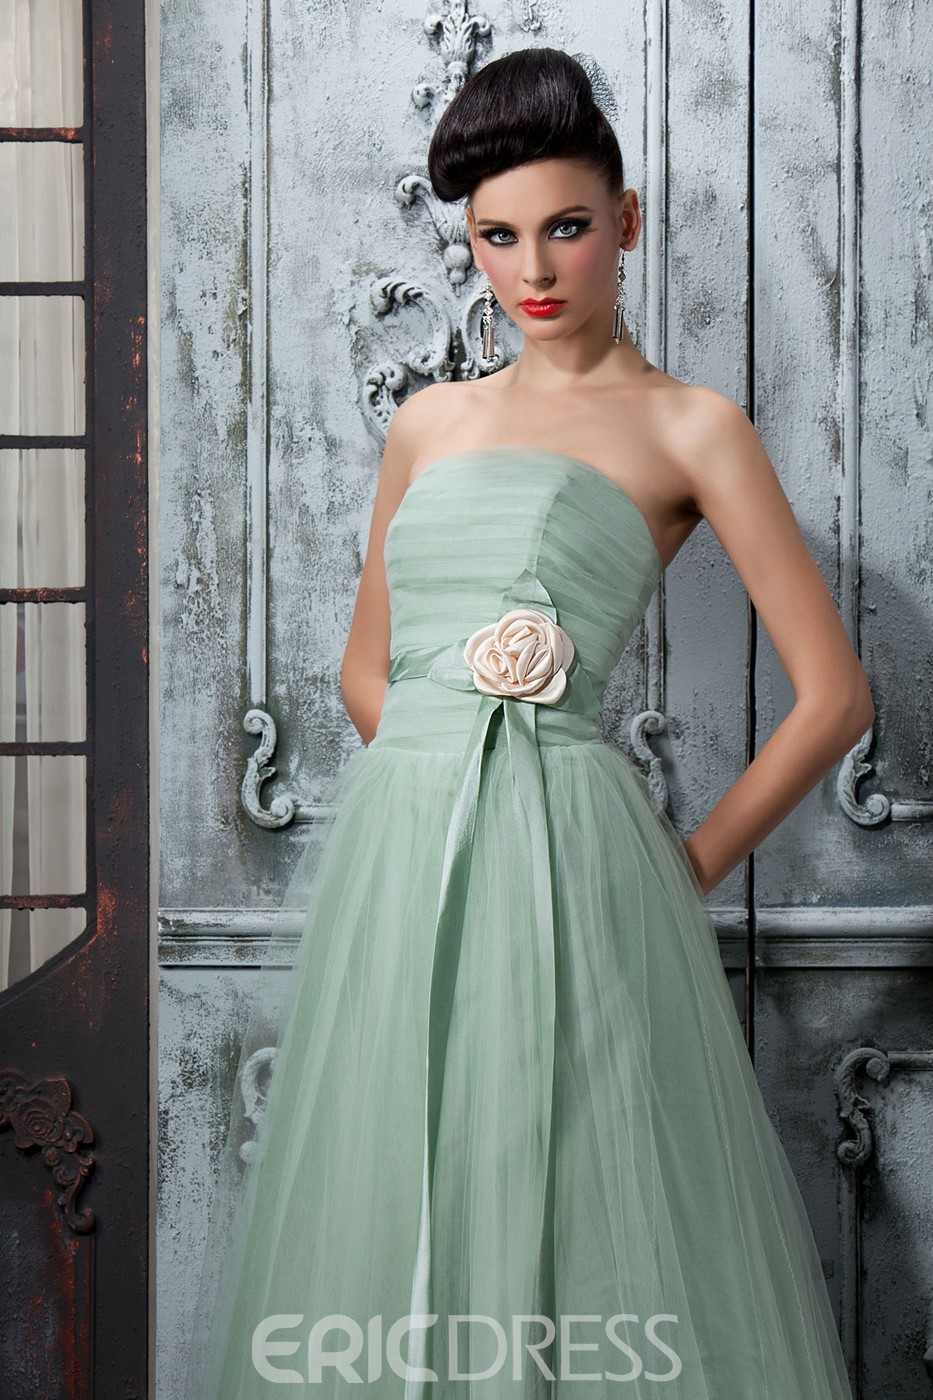 Wonderful A-Line Flowers Pleats Strapless Sleeveless Floor-Length Polina's Bridesmaid Dress